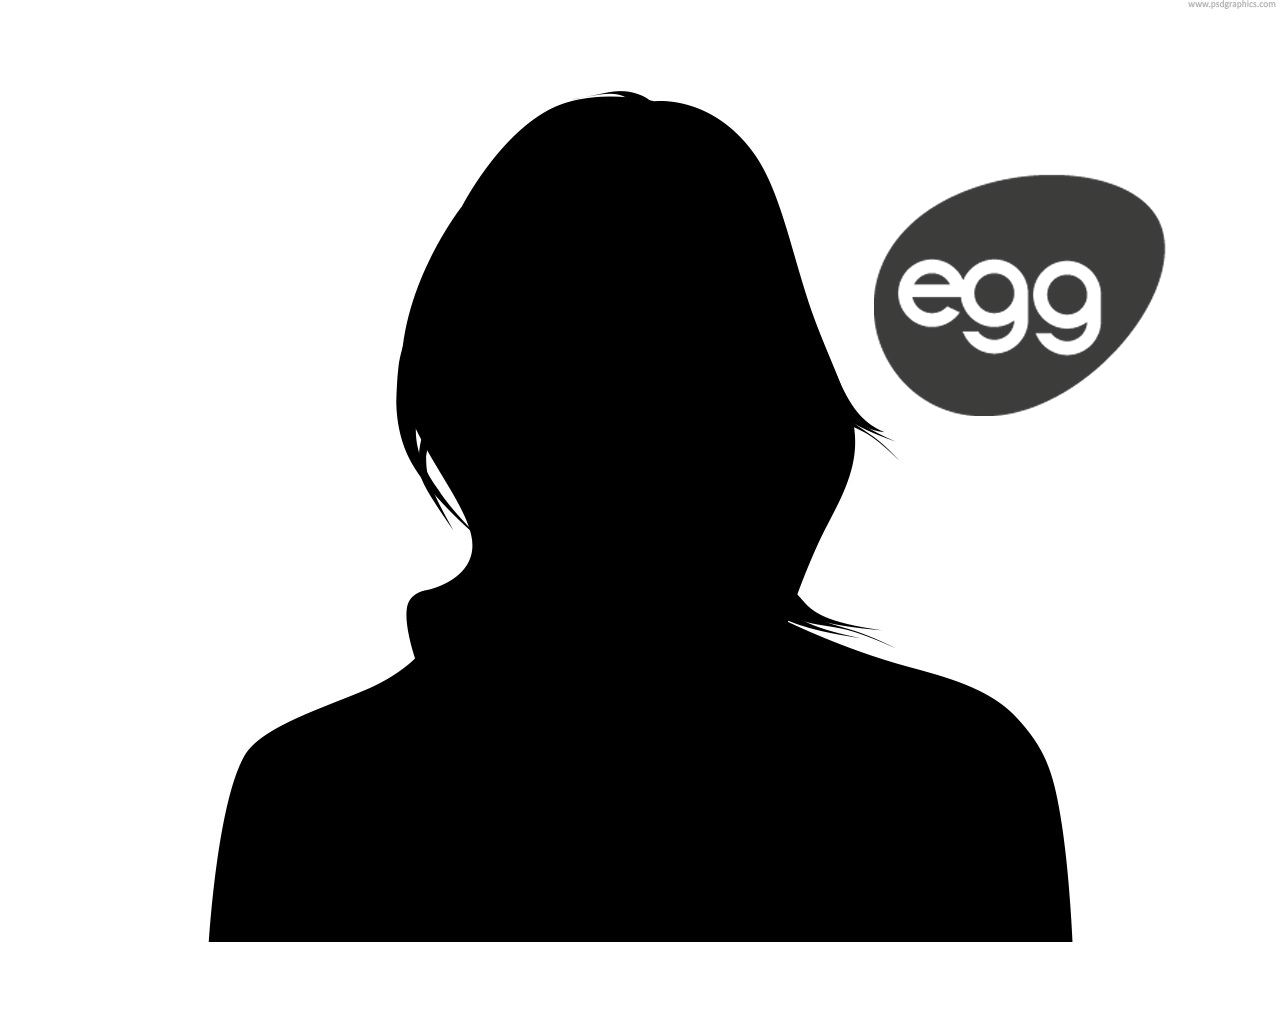 front-face-silhouette-30.jpg